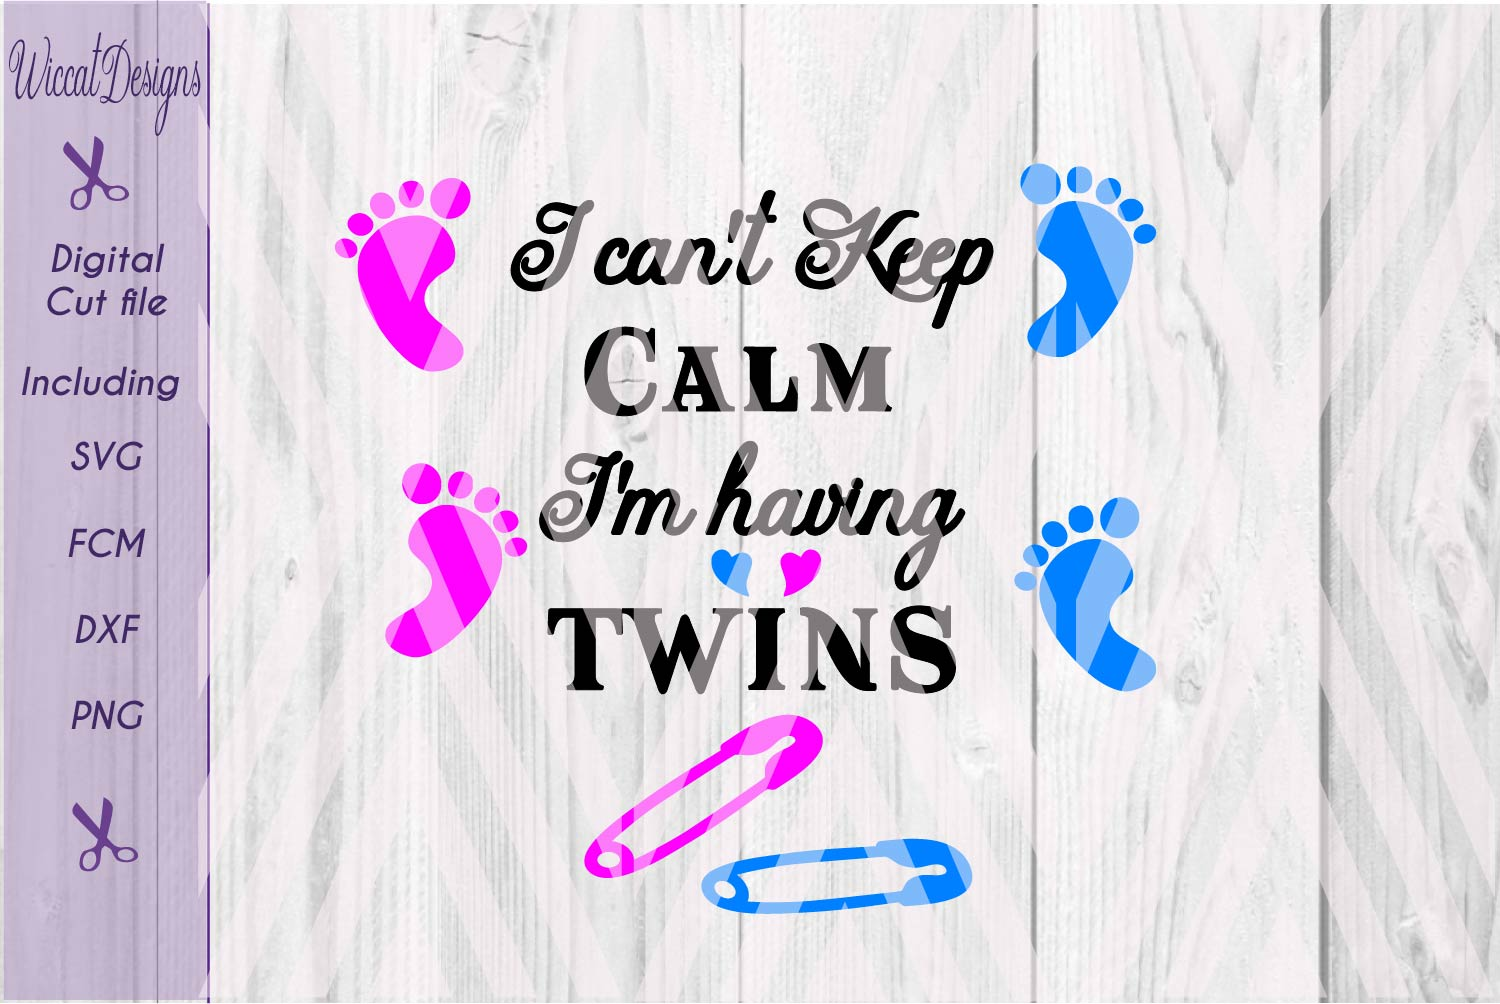 Twins svg, pregnant svg, Quotes svg, Keep calm svg, newborn example image 2